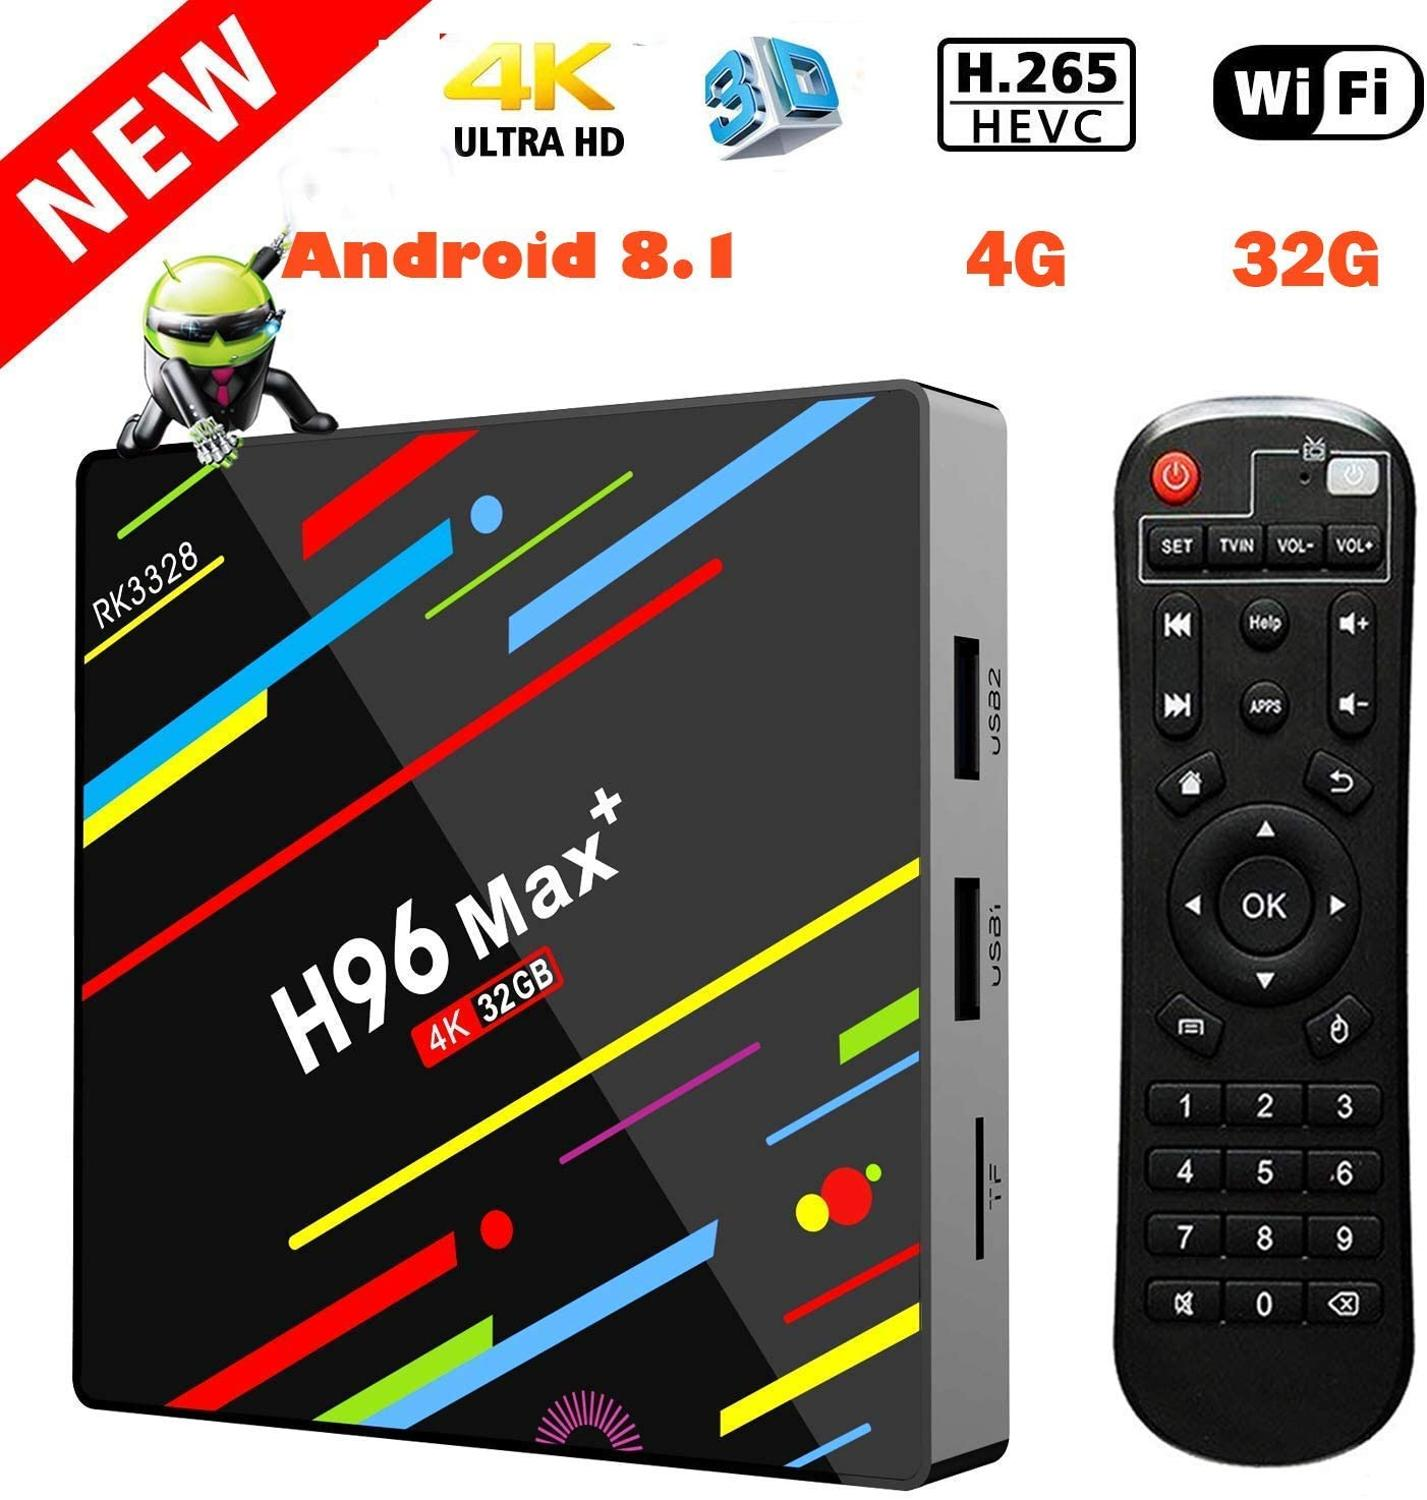 Android 9.0 TV BOX H96 MAX PLUS Optional Air Mouse RK3328 Quad Core 4GB DDR3 64GB EMMC WiFi 2.4G/5G KDMC18.0